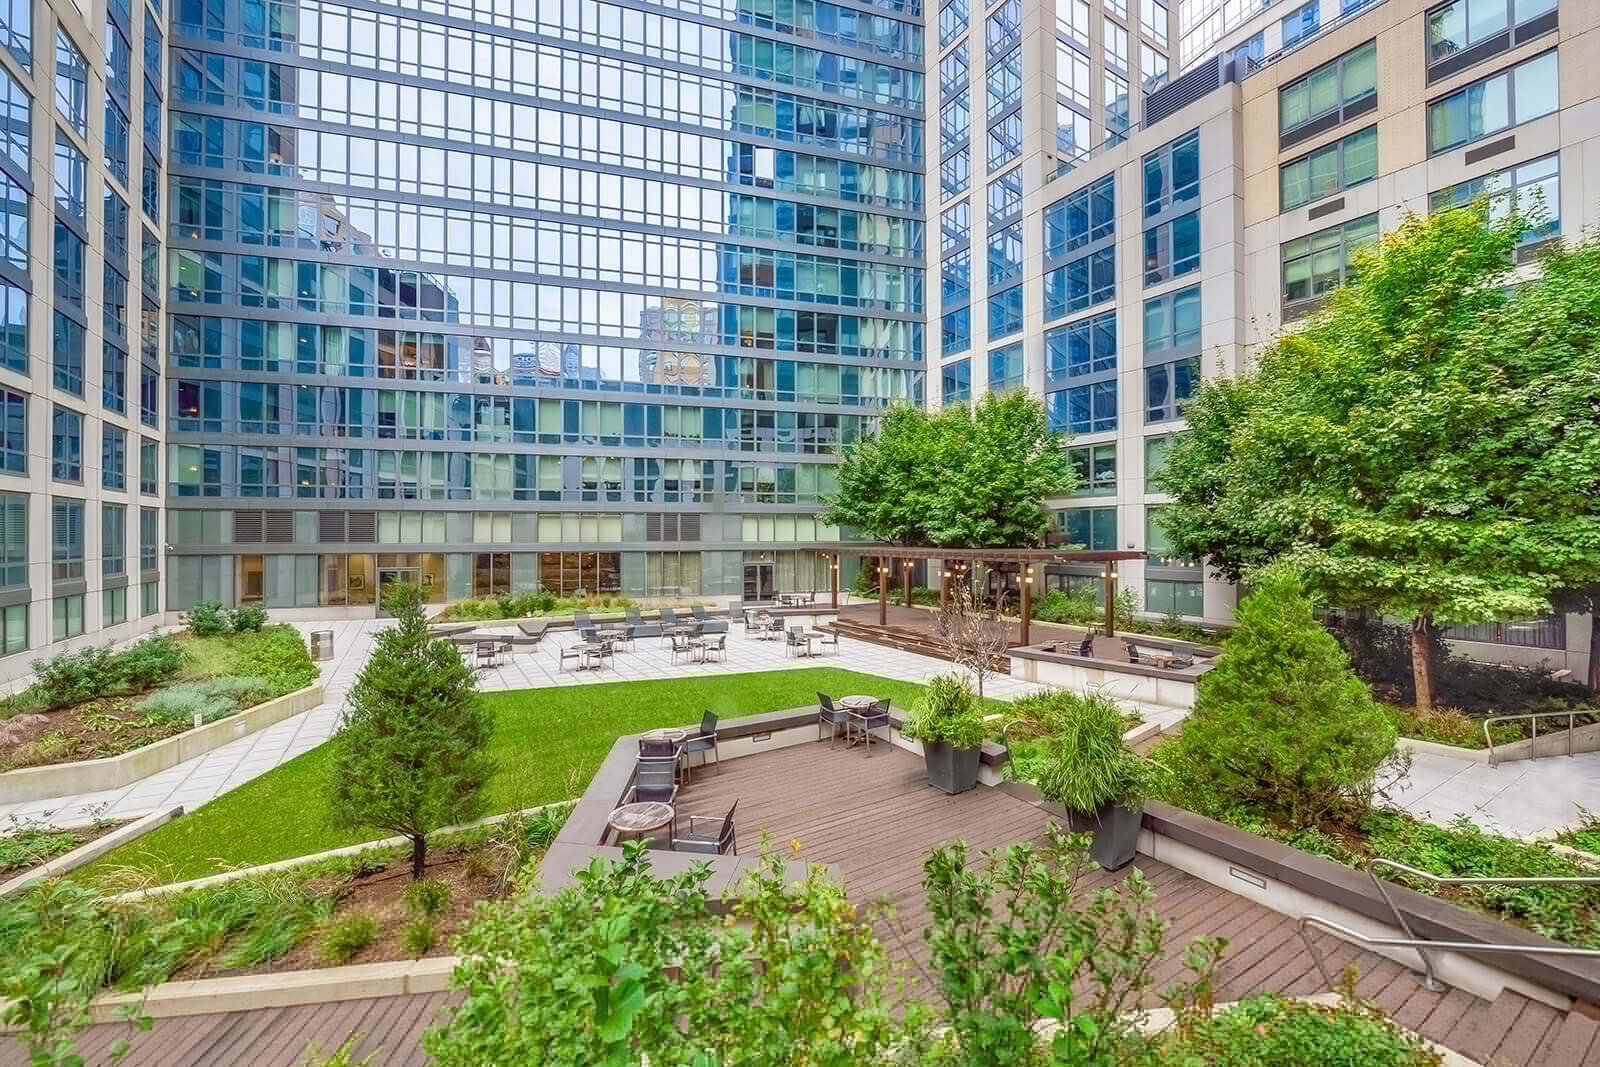 Landscaped courtyard at The Aldyn, New York, New York